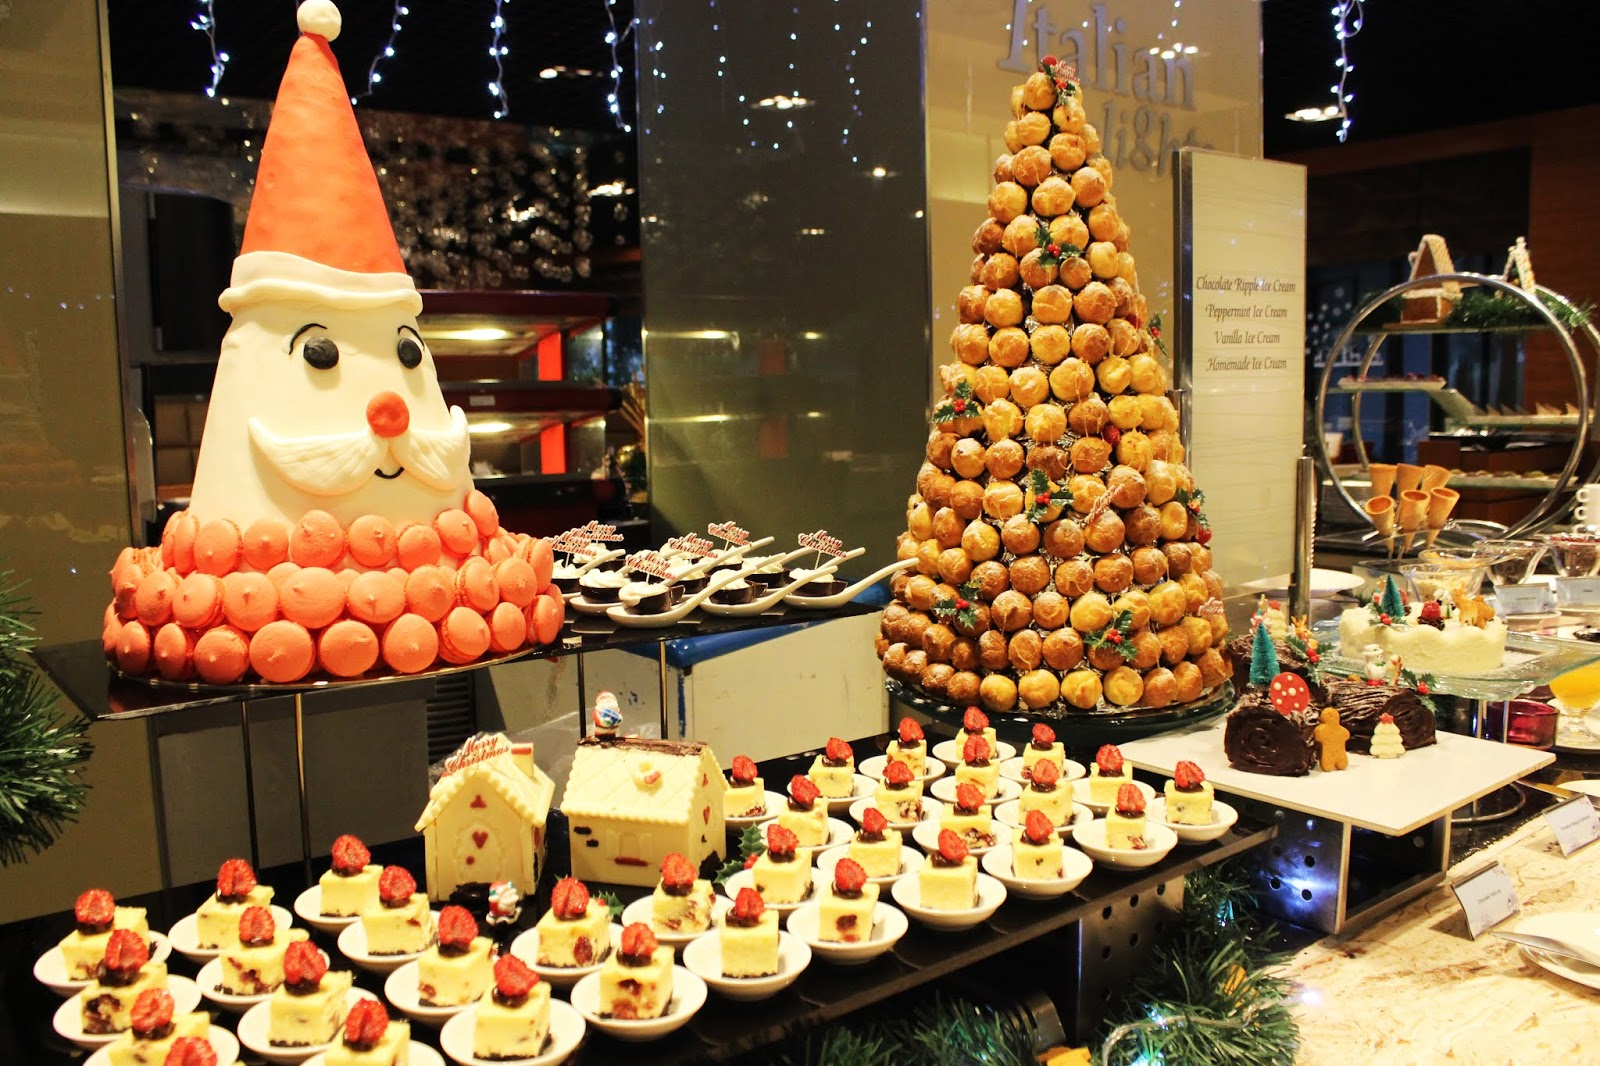 100f3bbdd6f55 The dessert table is all pomp and pleasure. The holiday treats include  Chocolate Yule Log